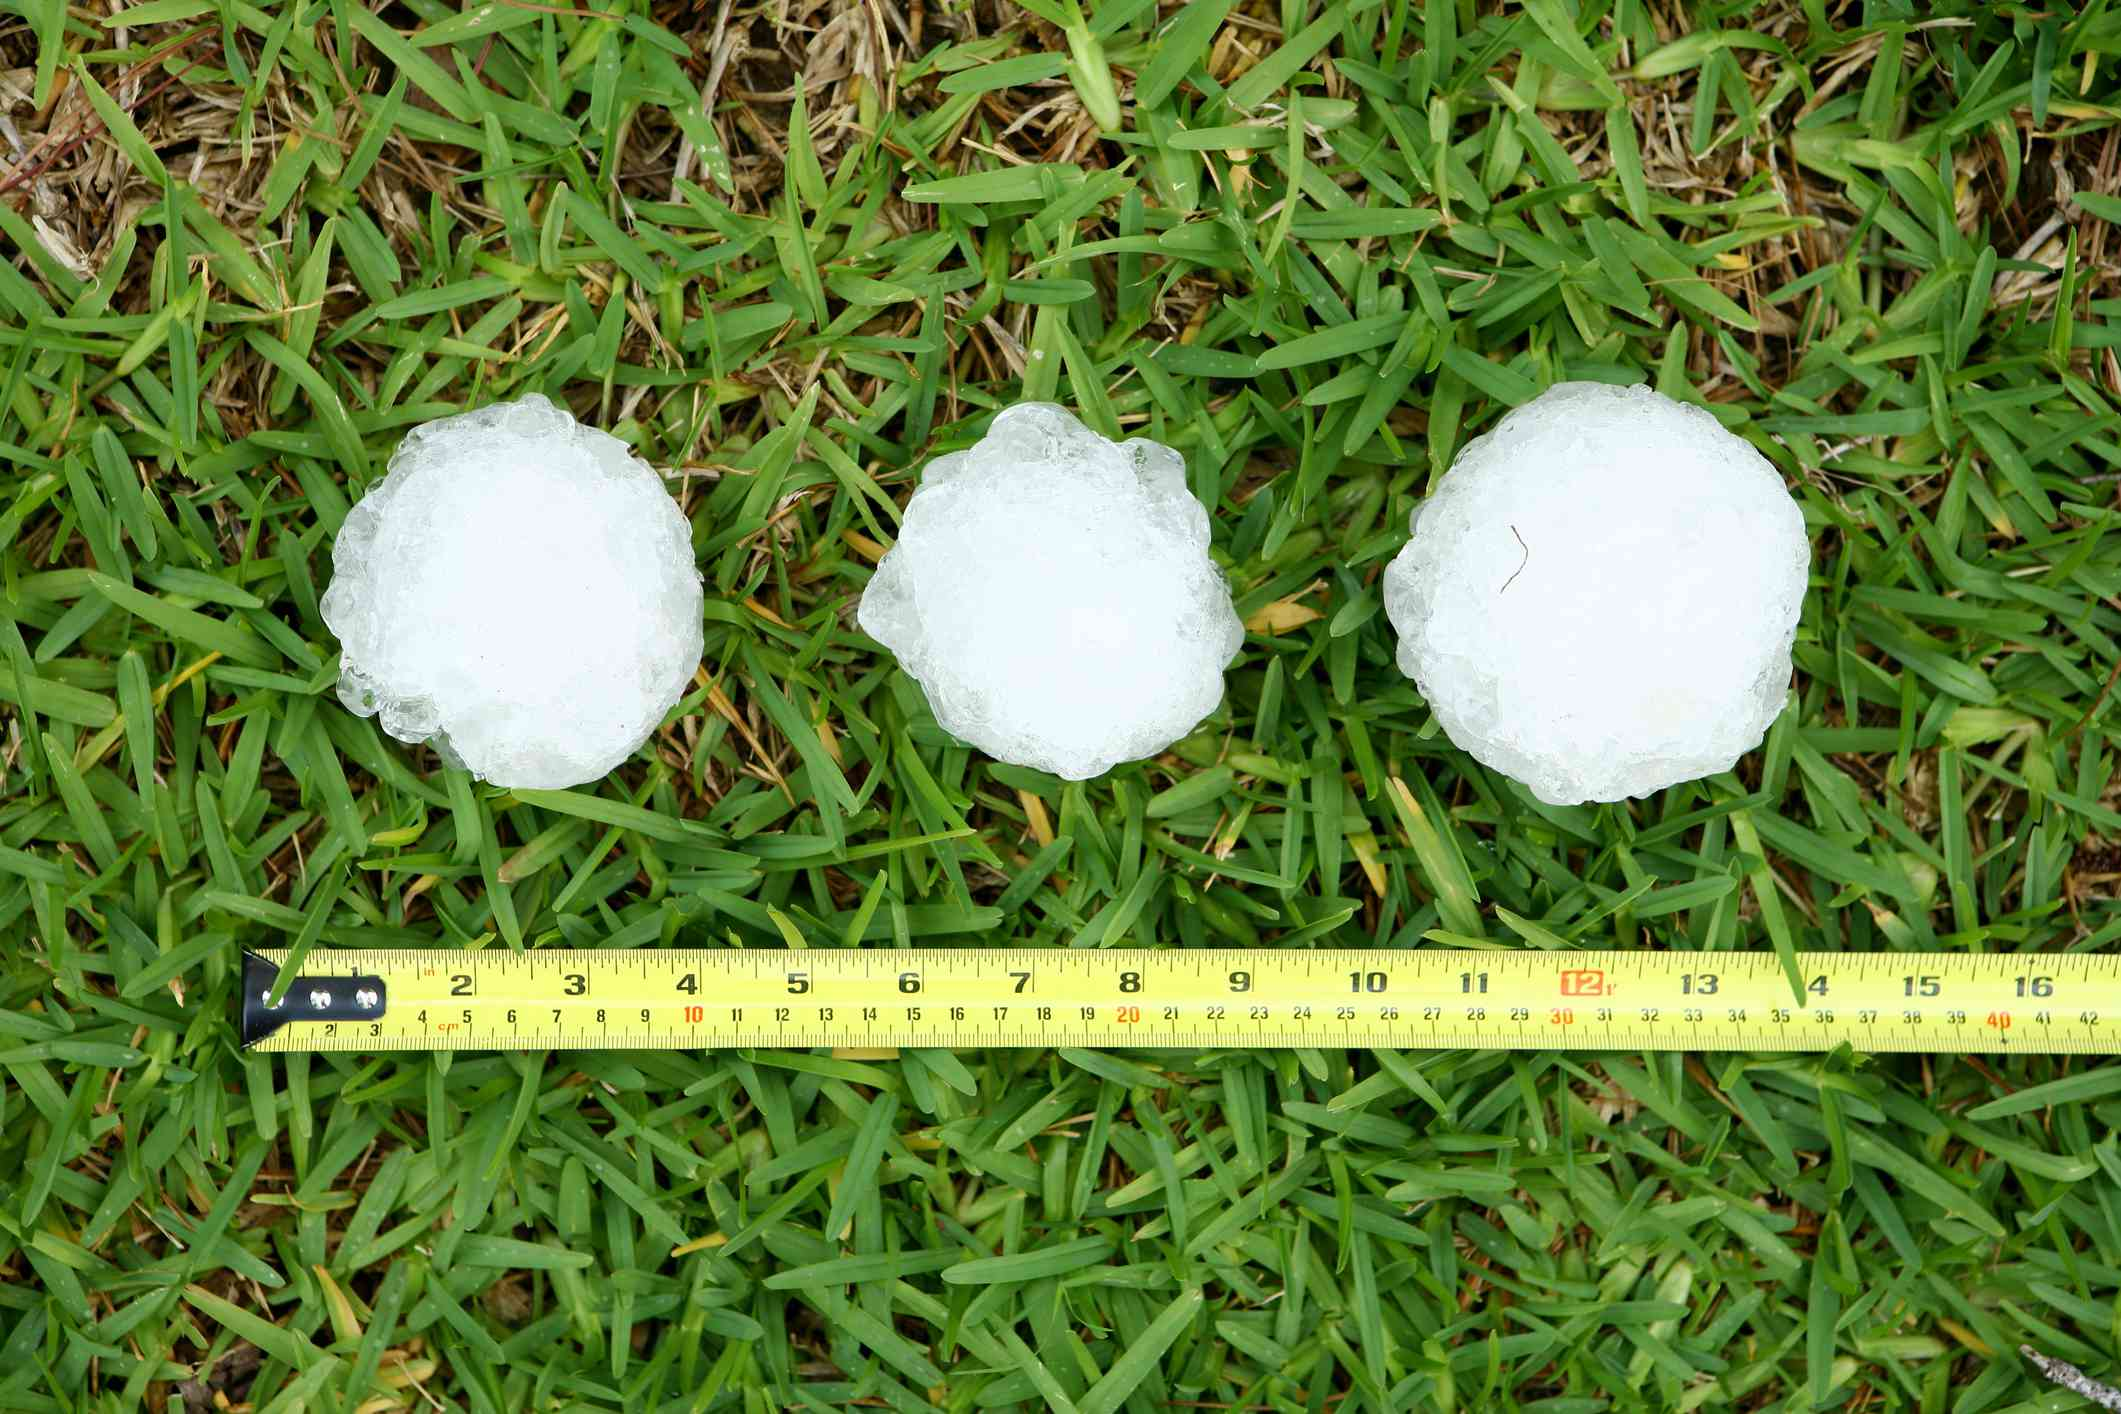 Three hailstones lie in the grass next to a ruler.